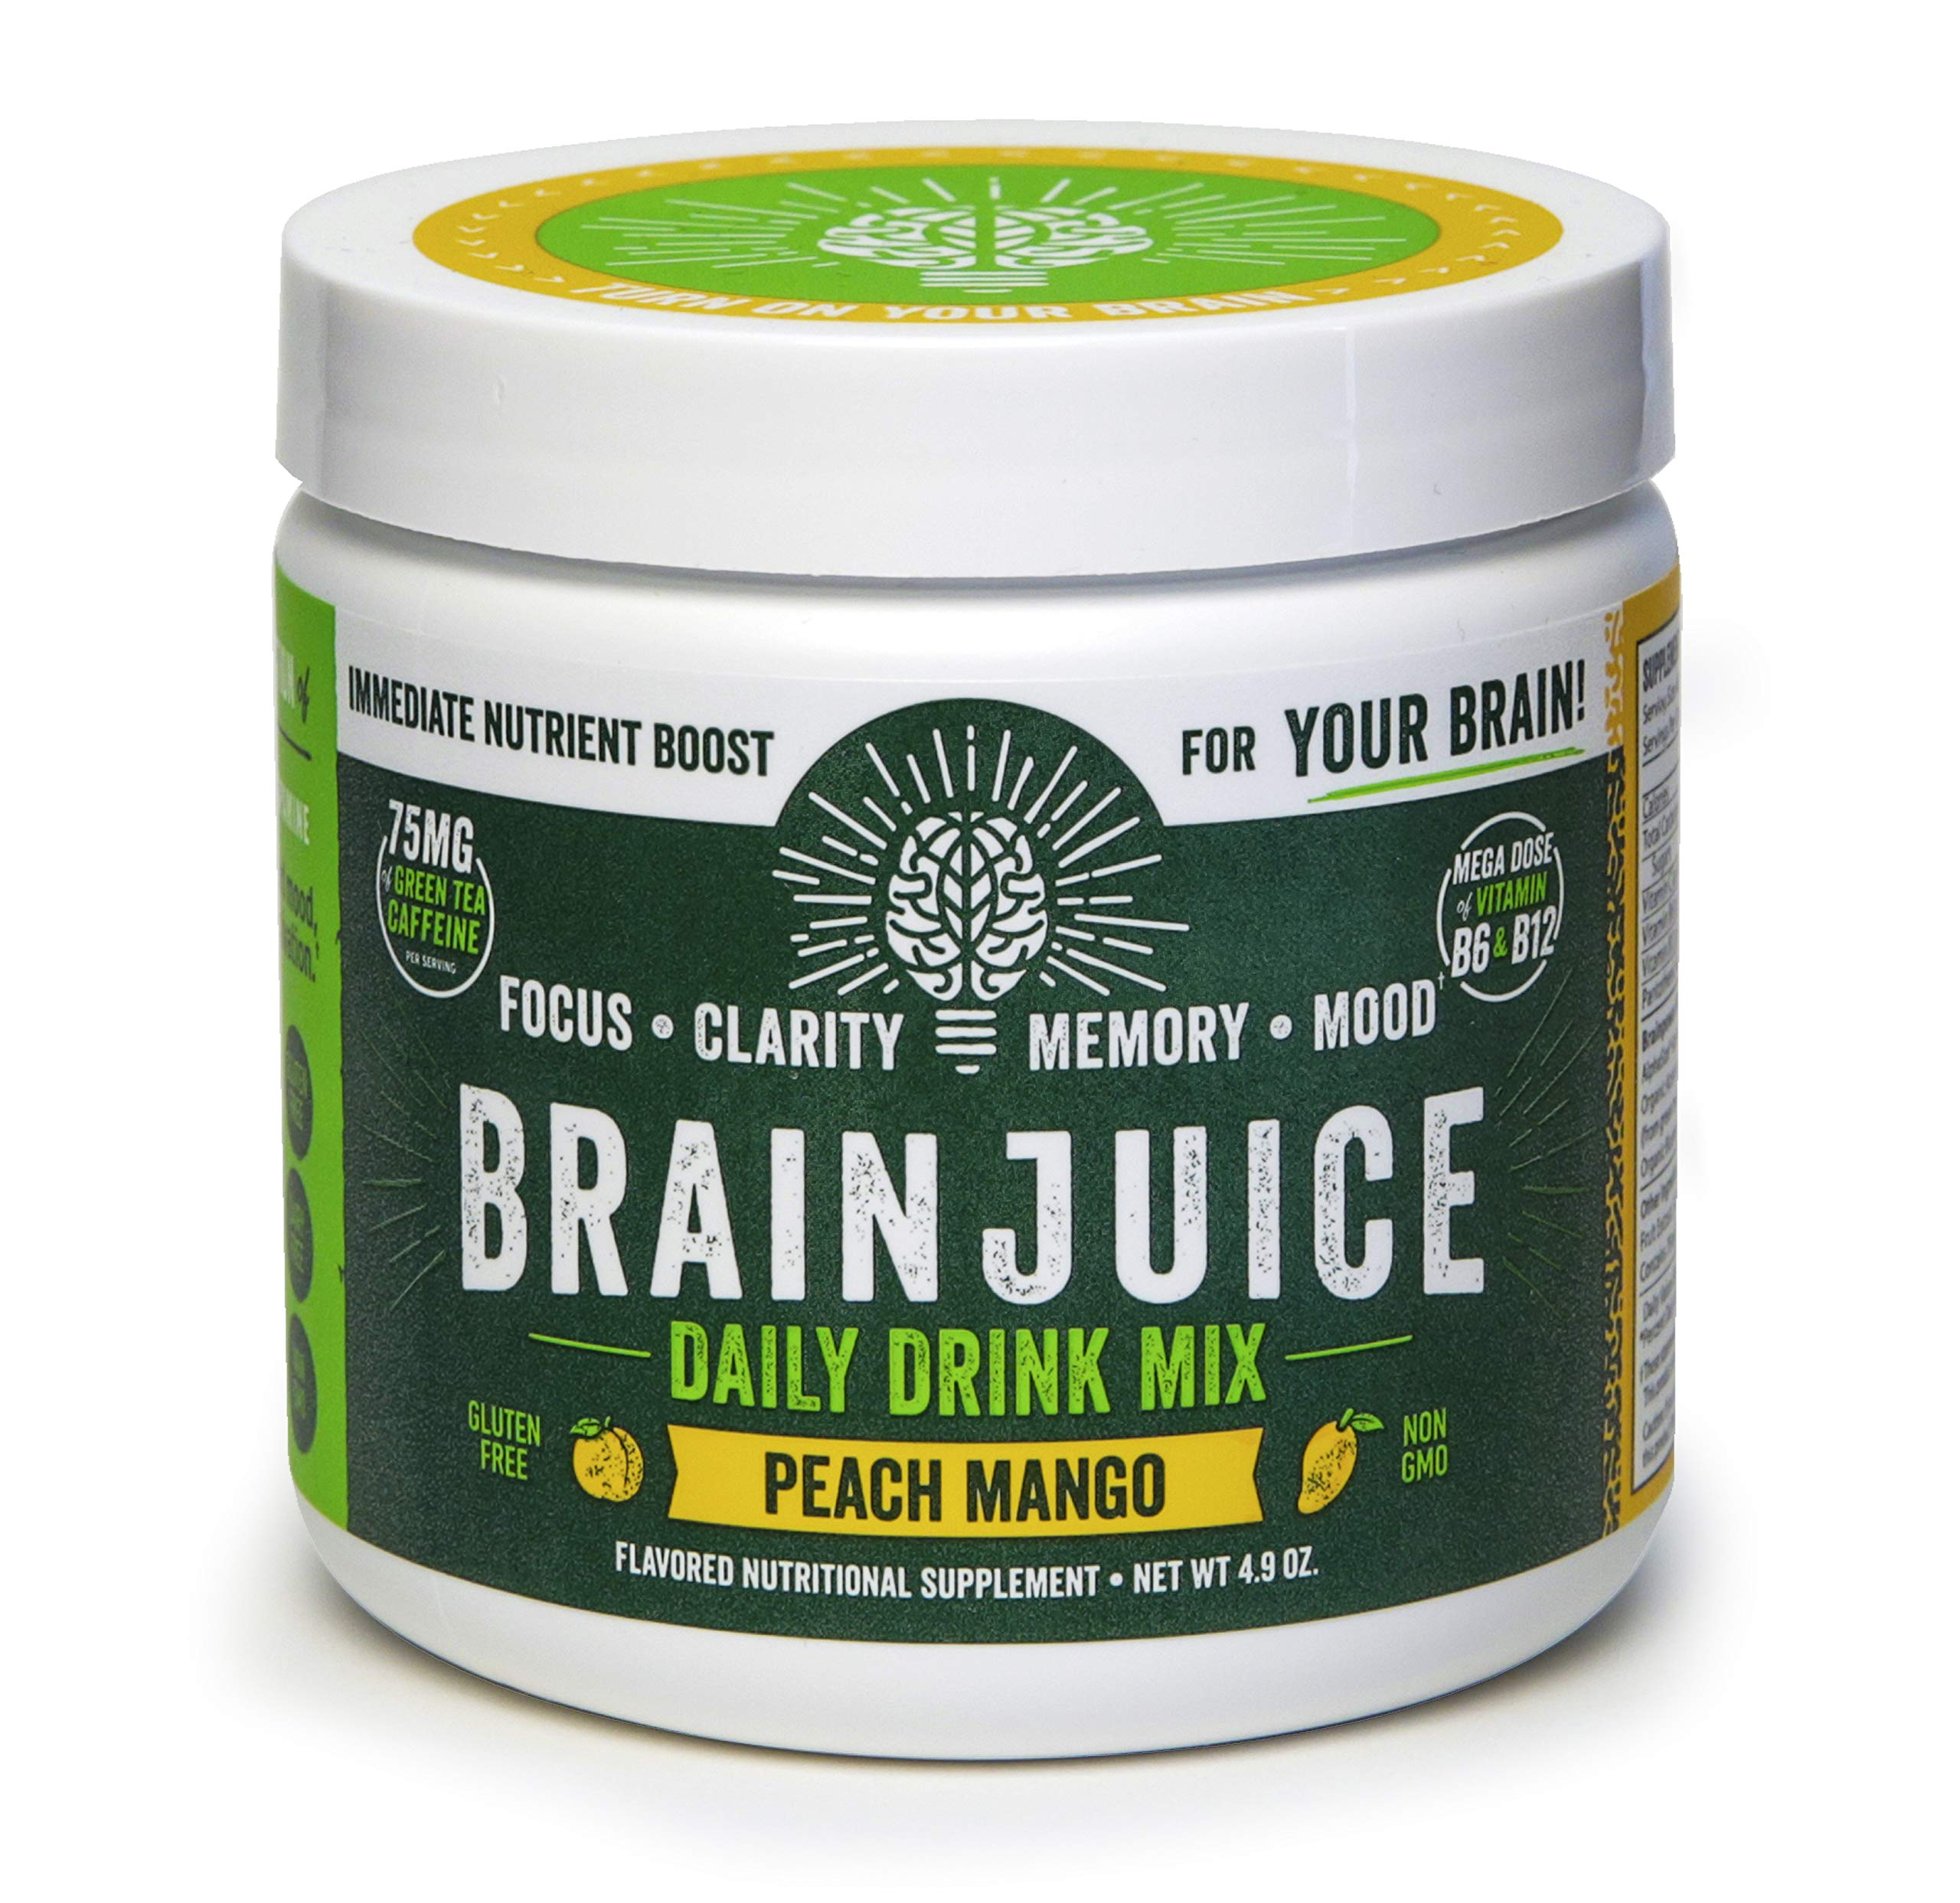 BrainJuice Brain Booster Daily Drink Mix, Original Peach Mango | Supplement for Improved Energy, Memory, Focus, Clarity & Mood, Gluten-Free, Non-GMO | 30 Servings